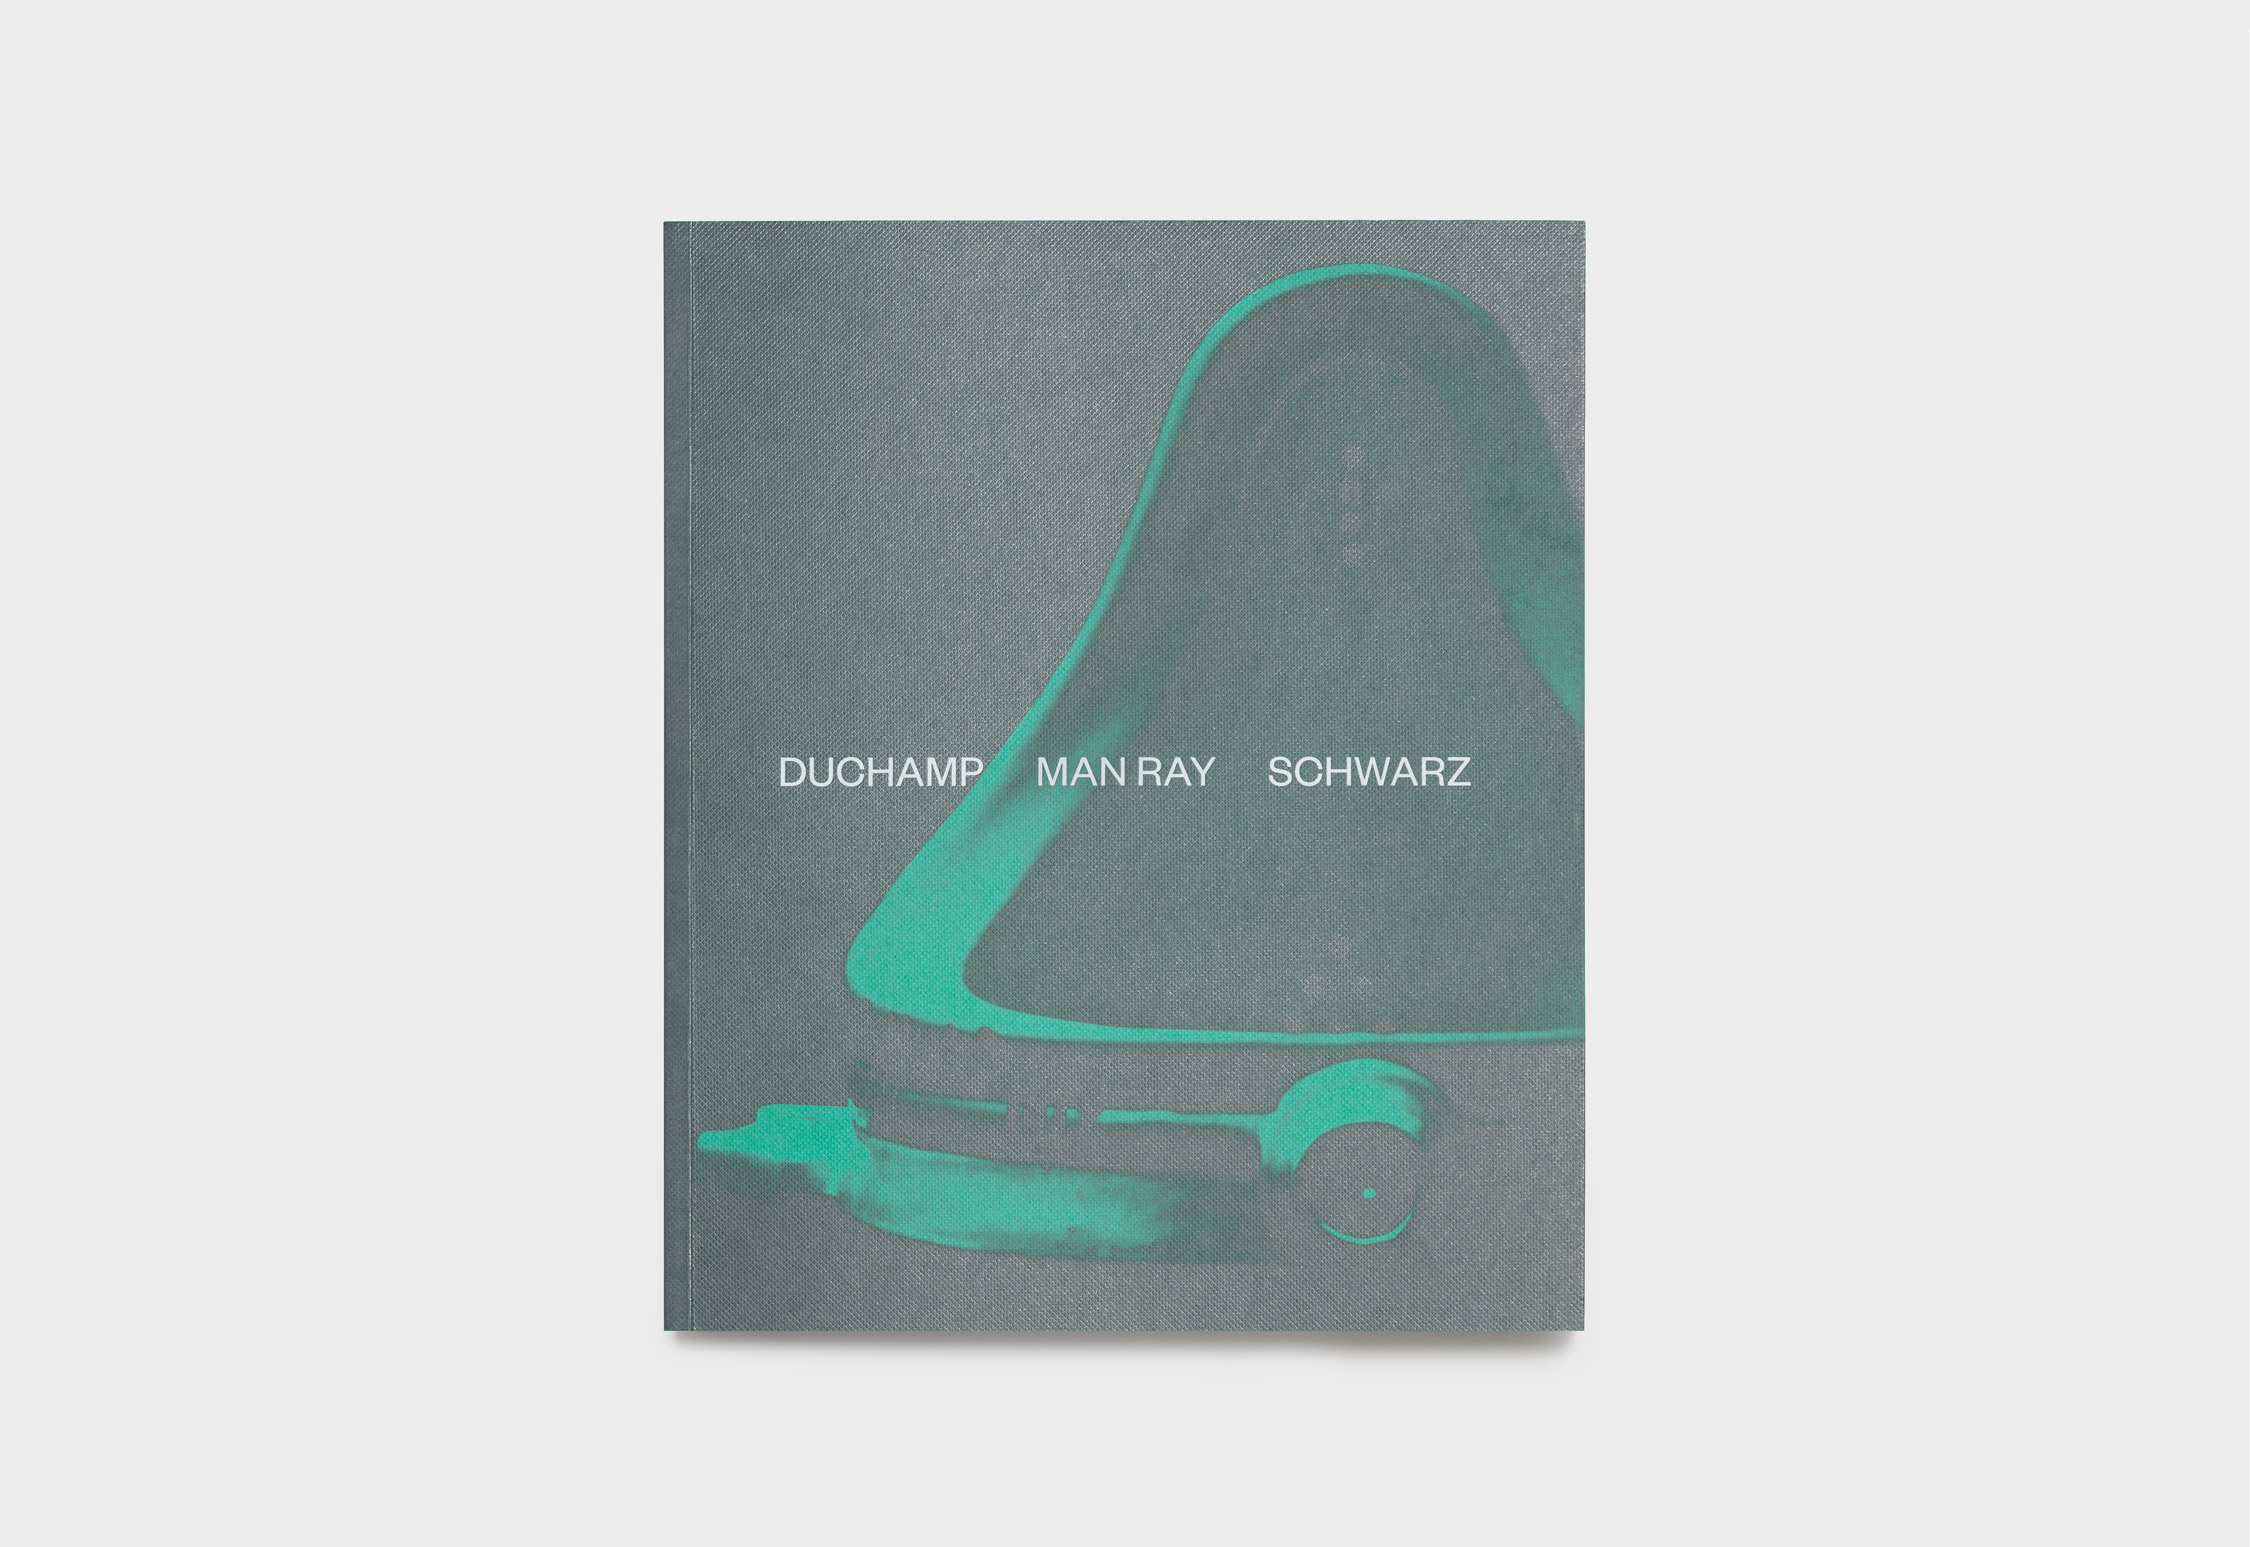 Duchamp, Man Ray, Schwarz exhibition catalogue designed by She Was Only